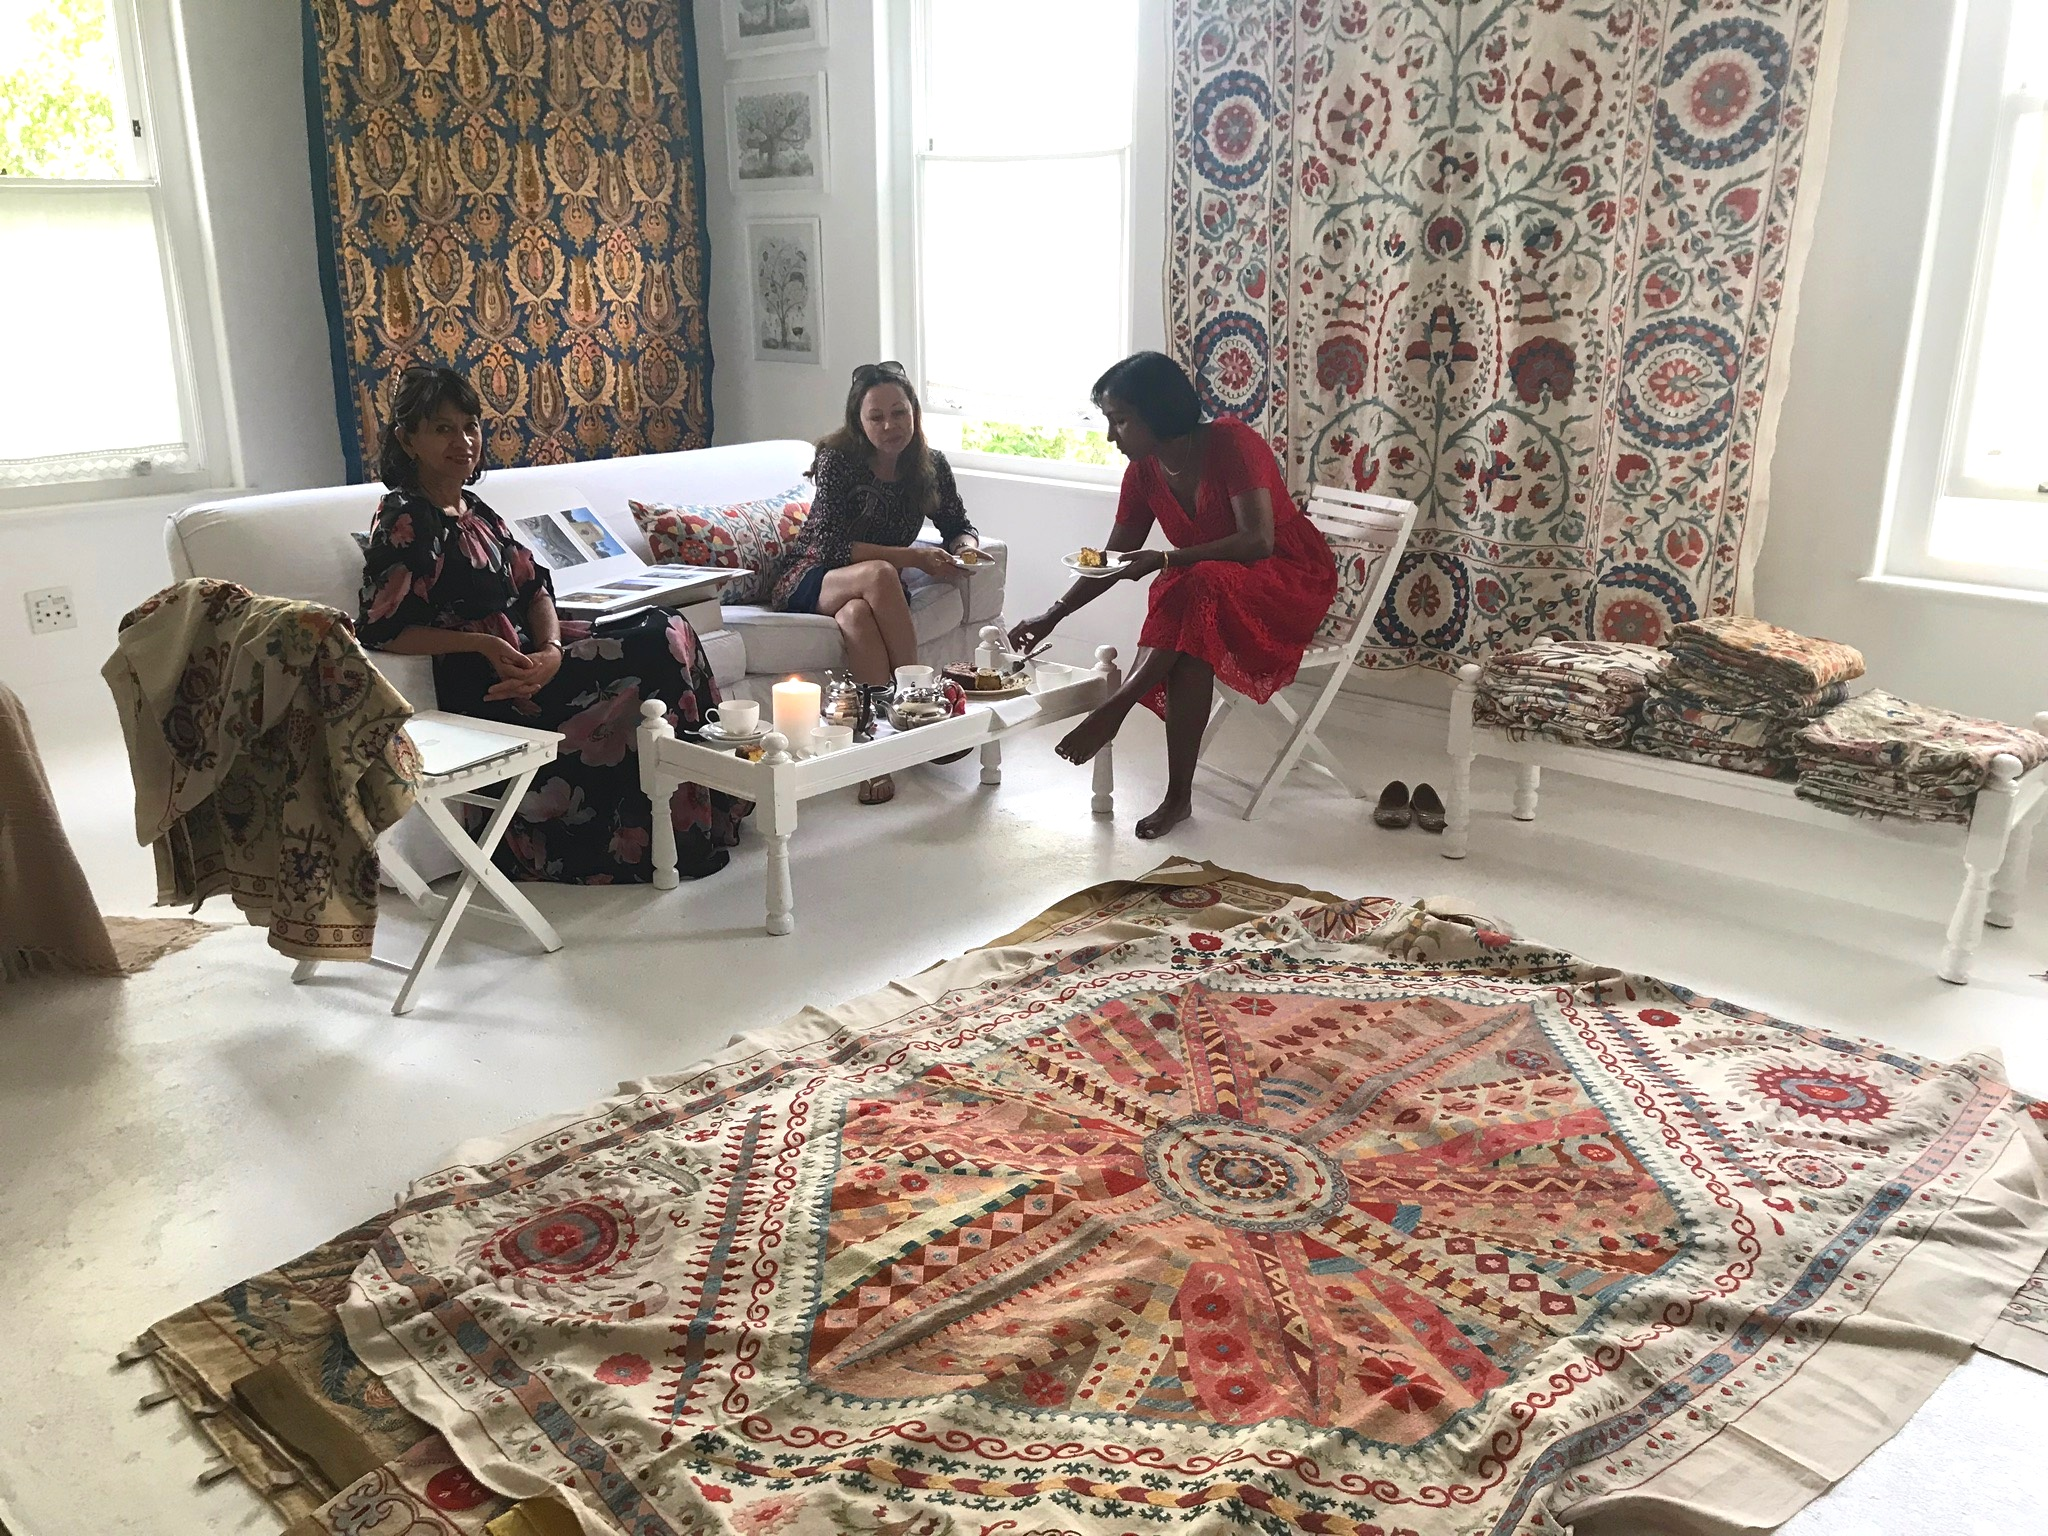 February 2019 Wednesday, three lovely women came to share in the beauty of the Suzani Collection.